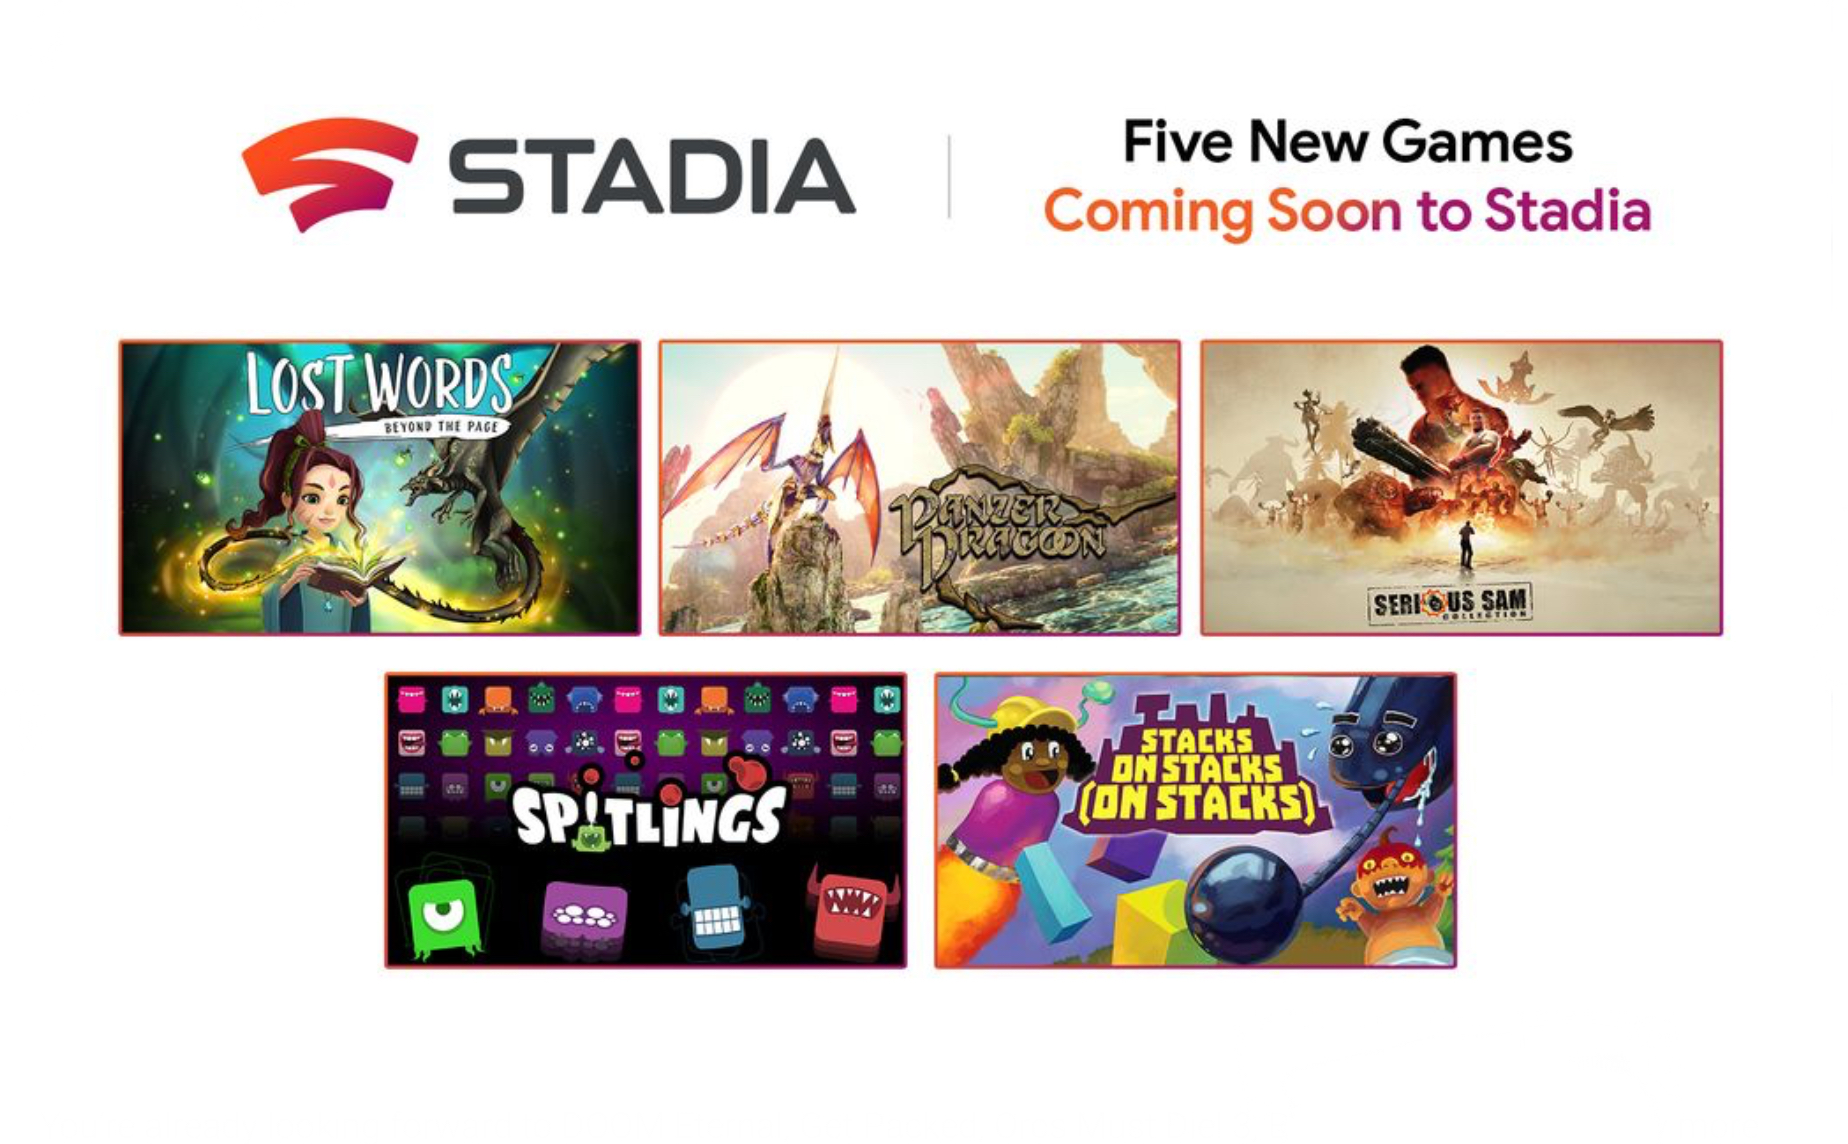 New games coming to Stadia!